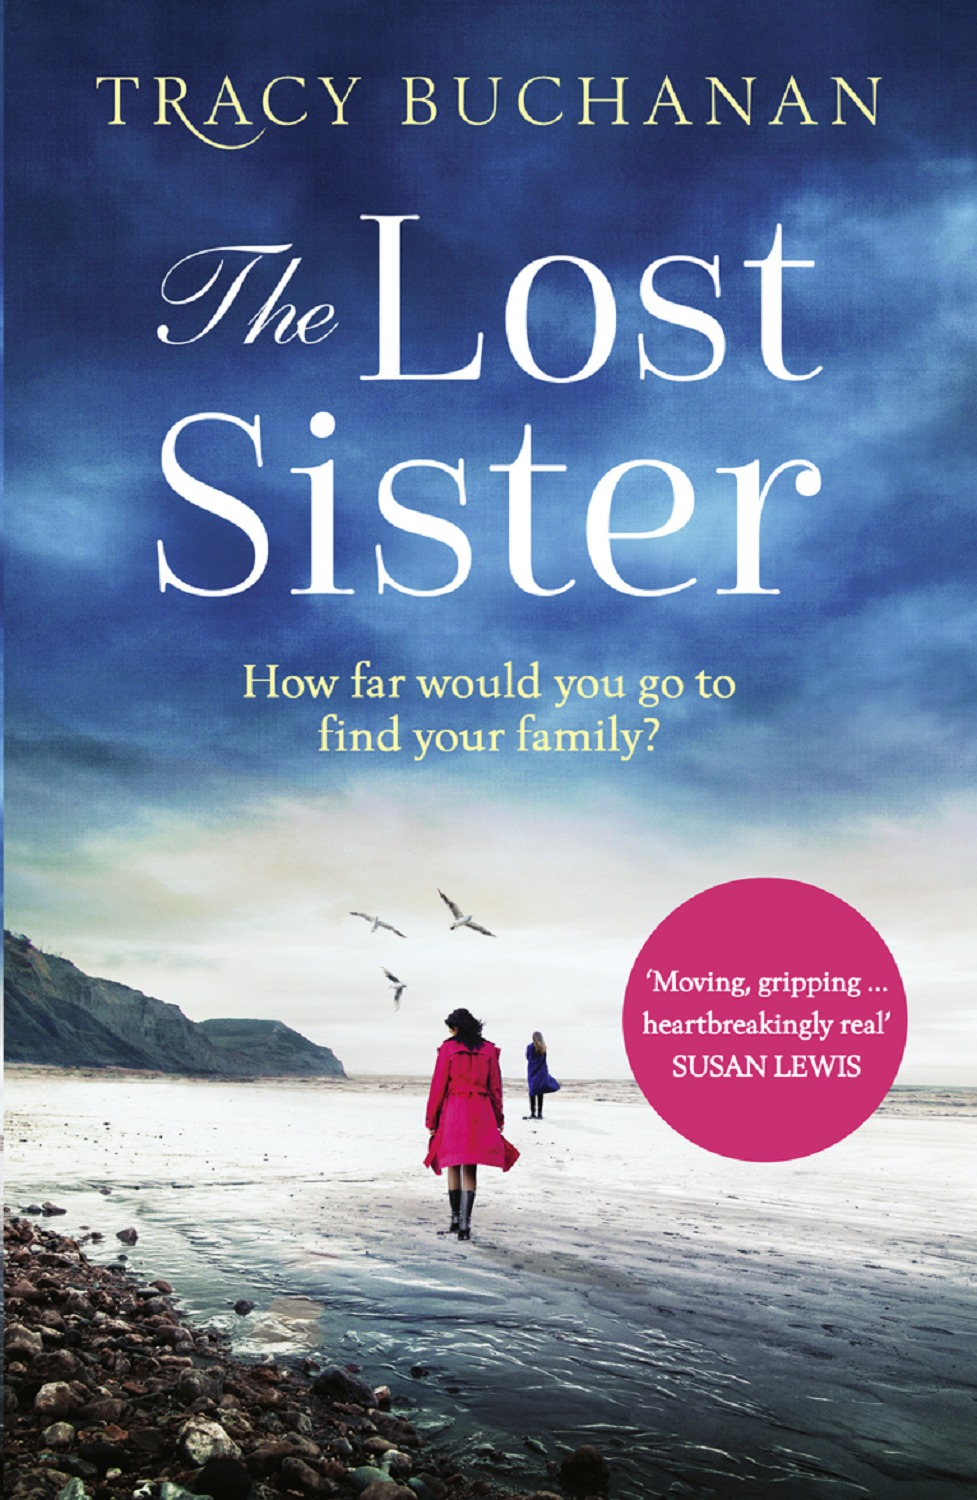 Tracy Buchanan The Lost Sister: A gripping emotional page turner with a breathtaking twist g frescobaldi canzon prima a 3 due bassi e canto page 7 page 9